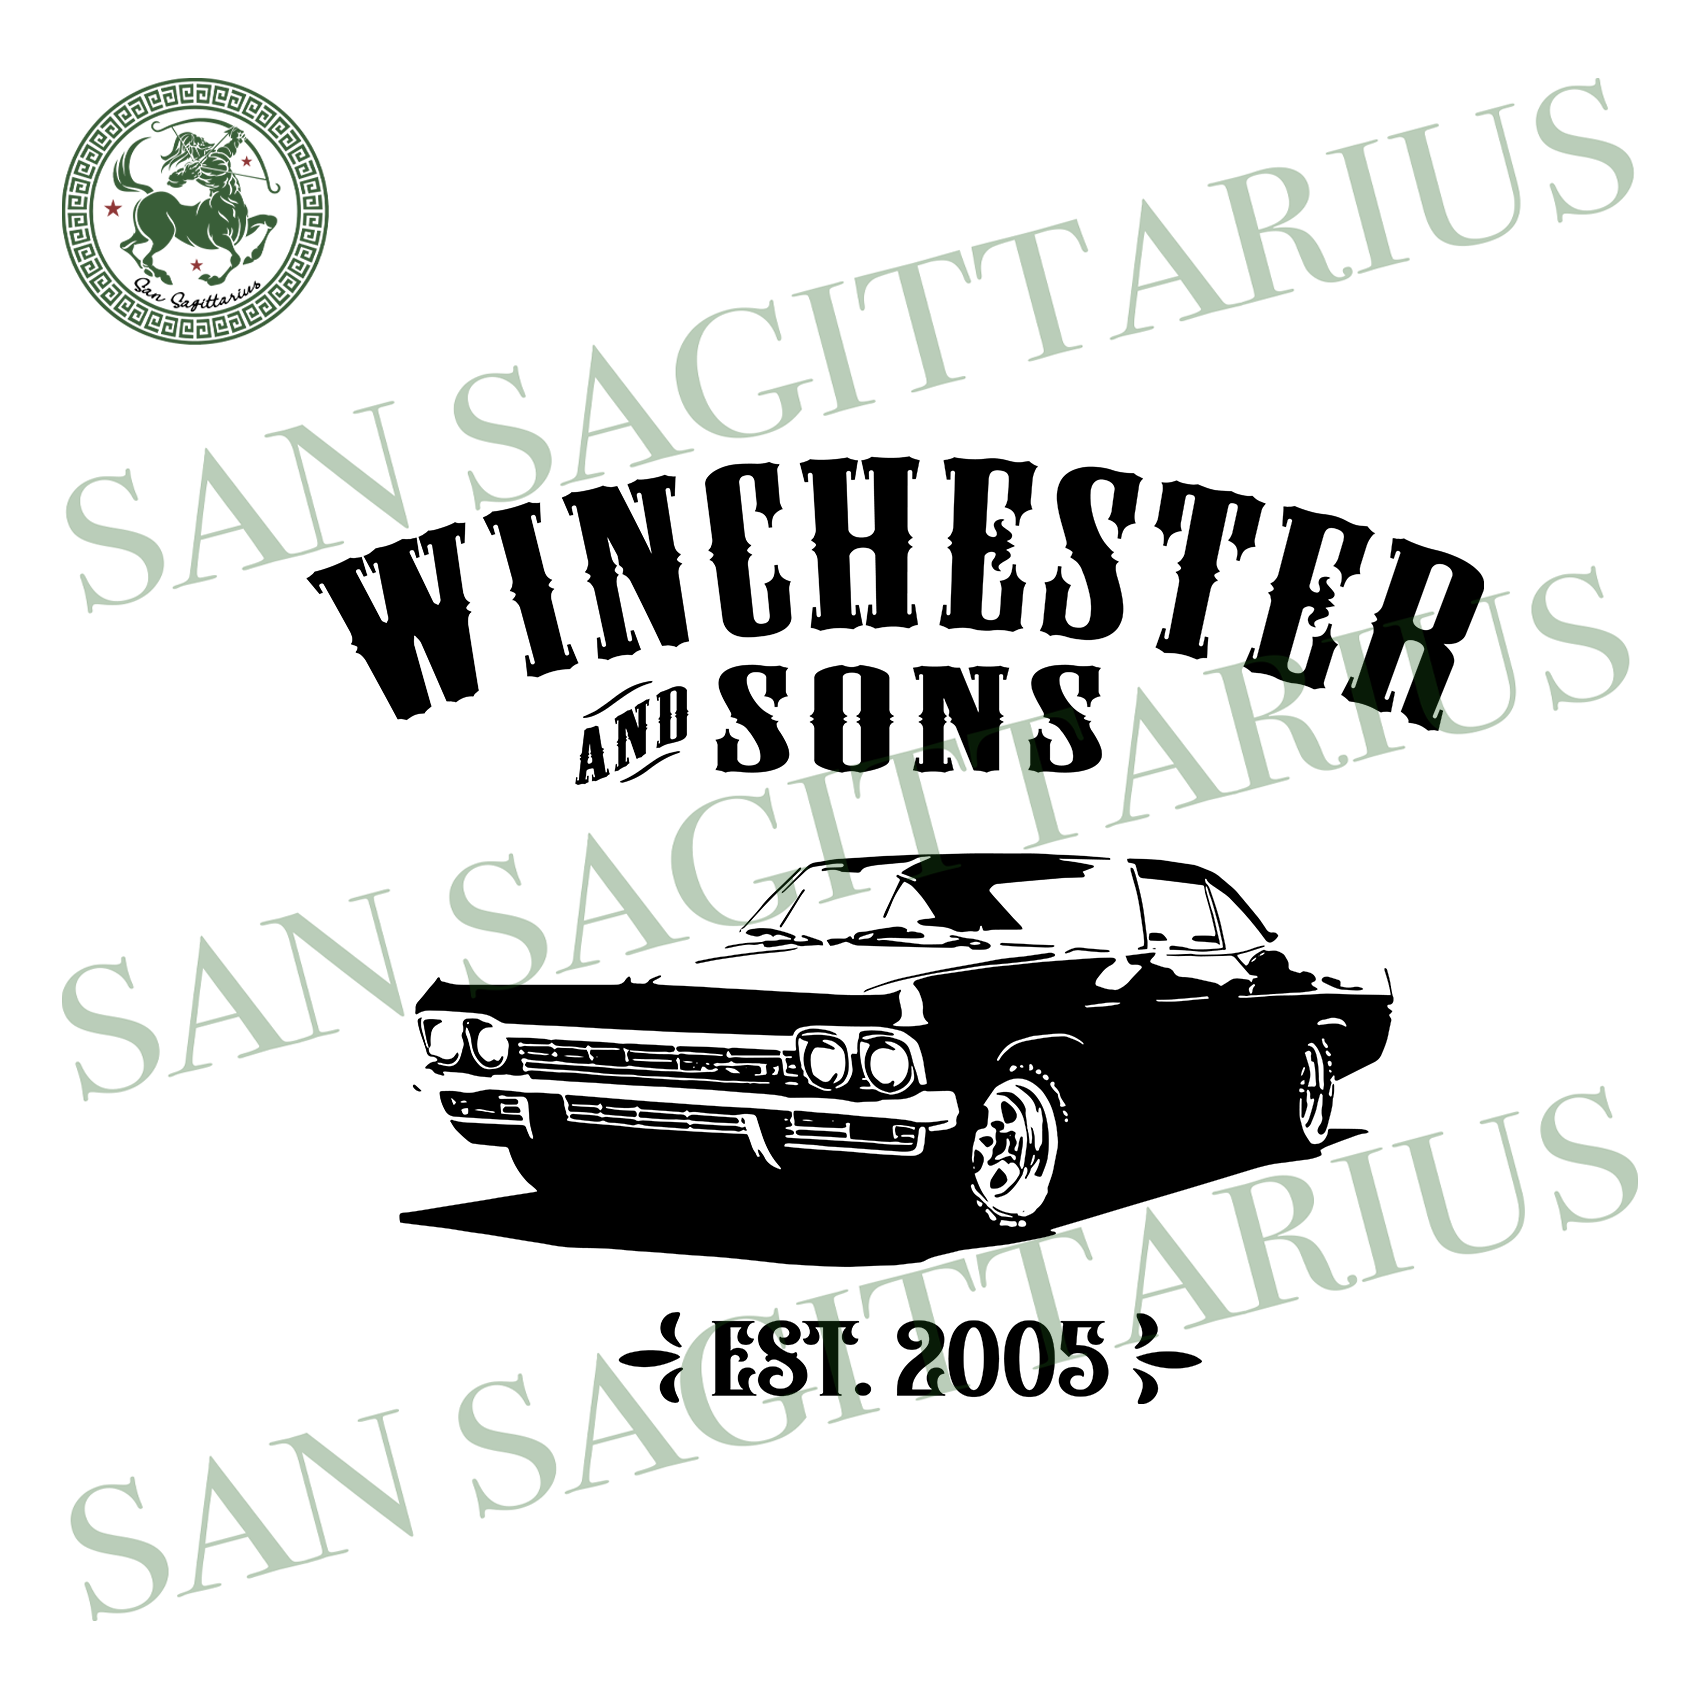 Winchester and sons svg,svg,women supernatural svg,bobby singer svg,sam winchester svg,dean winchester svg,svg cricut, silhouette svg files, cricut svg, silhouette svg, svg designs, vinyl svg